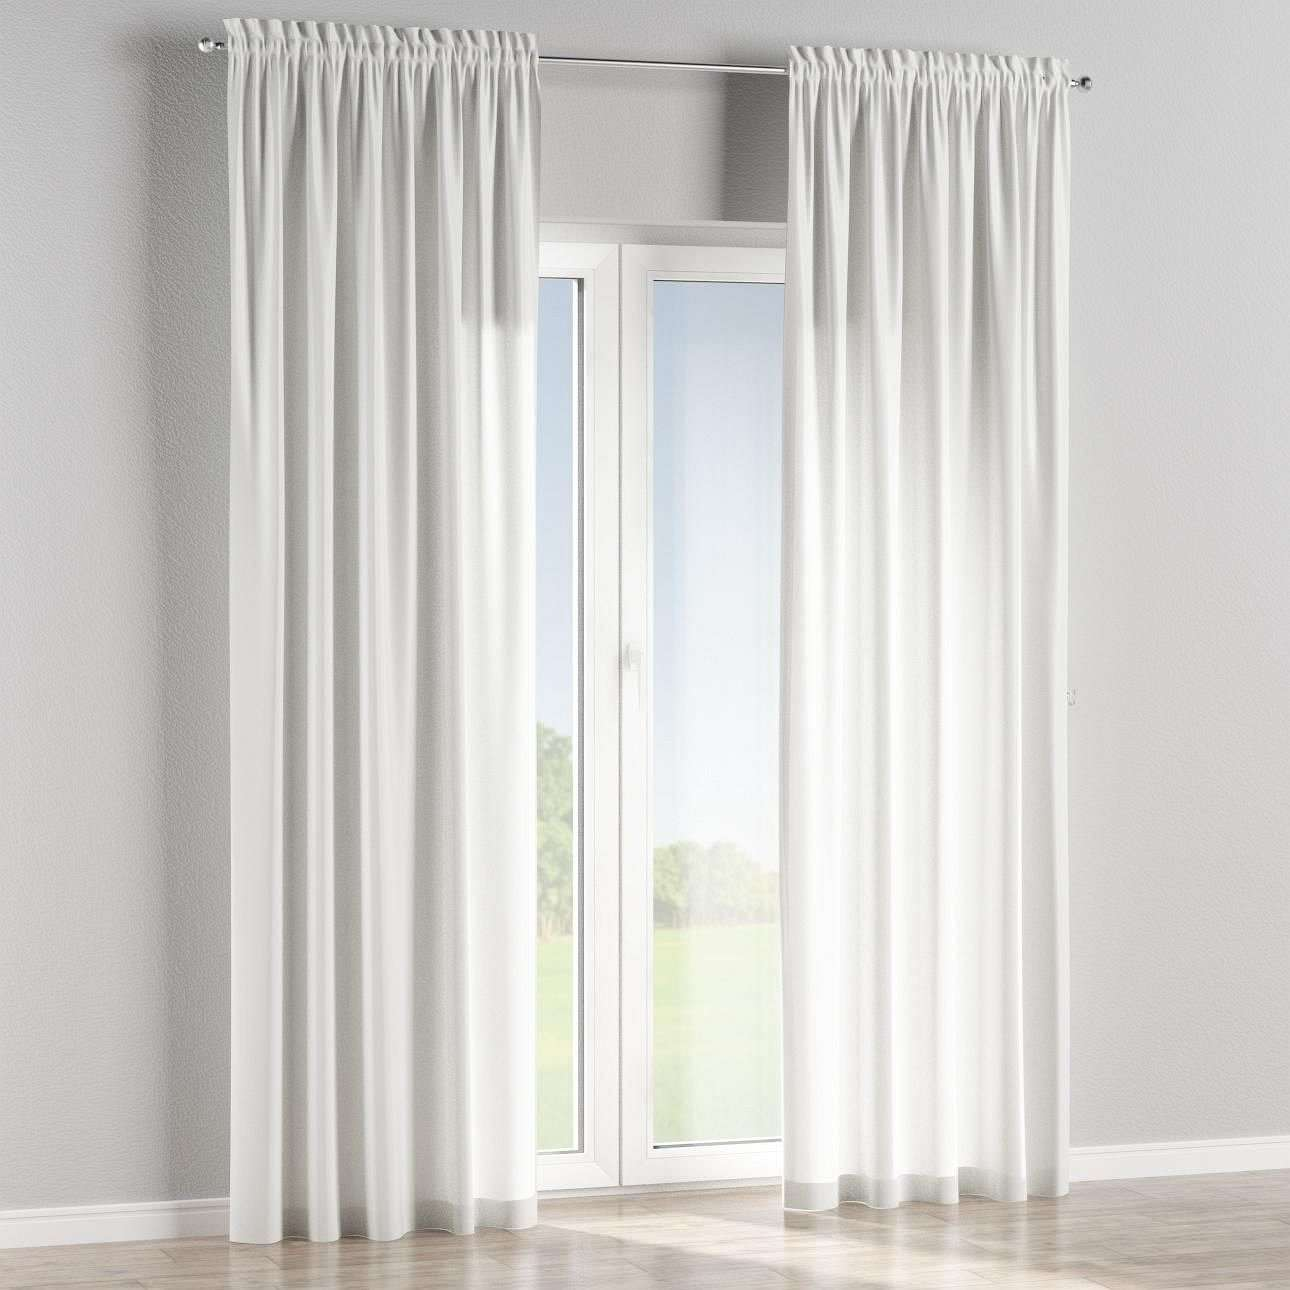 Slot and frill lined curtains in collection Norge, fabric: 150-17